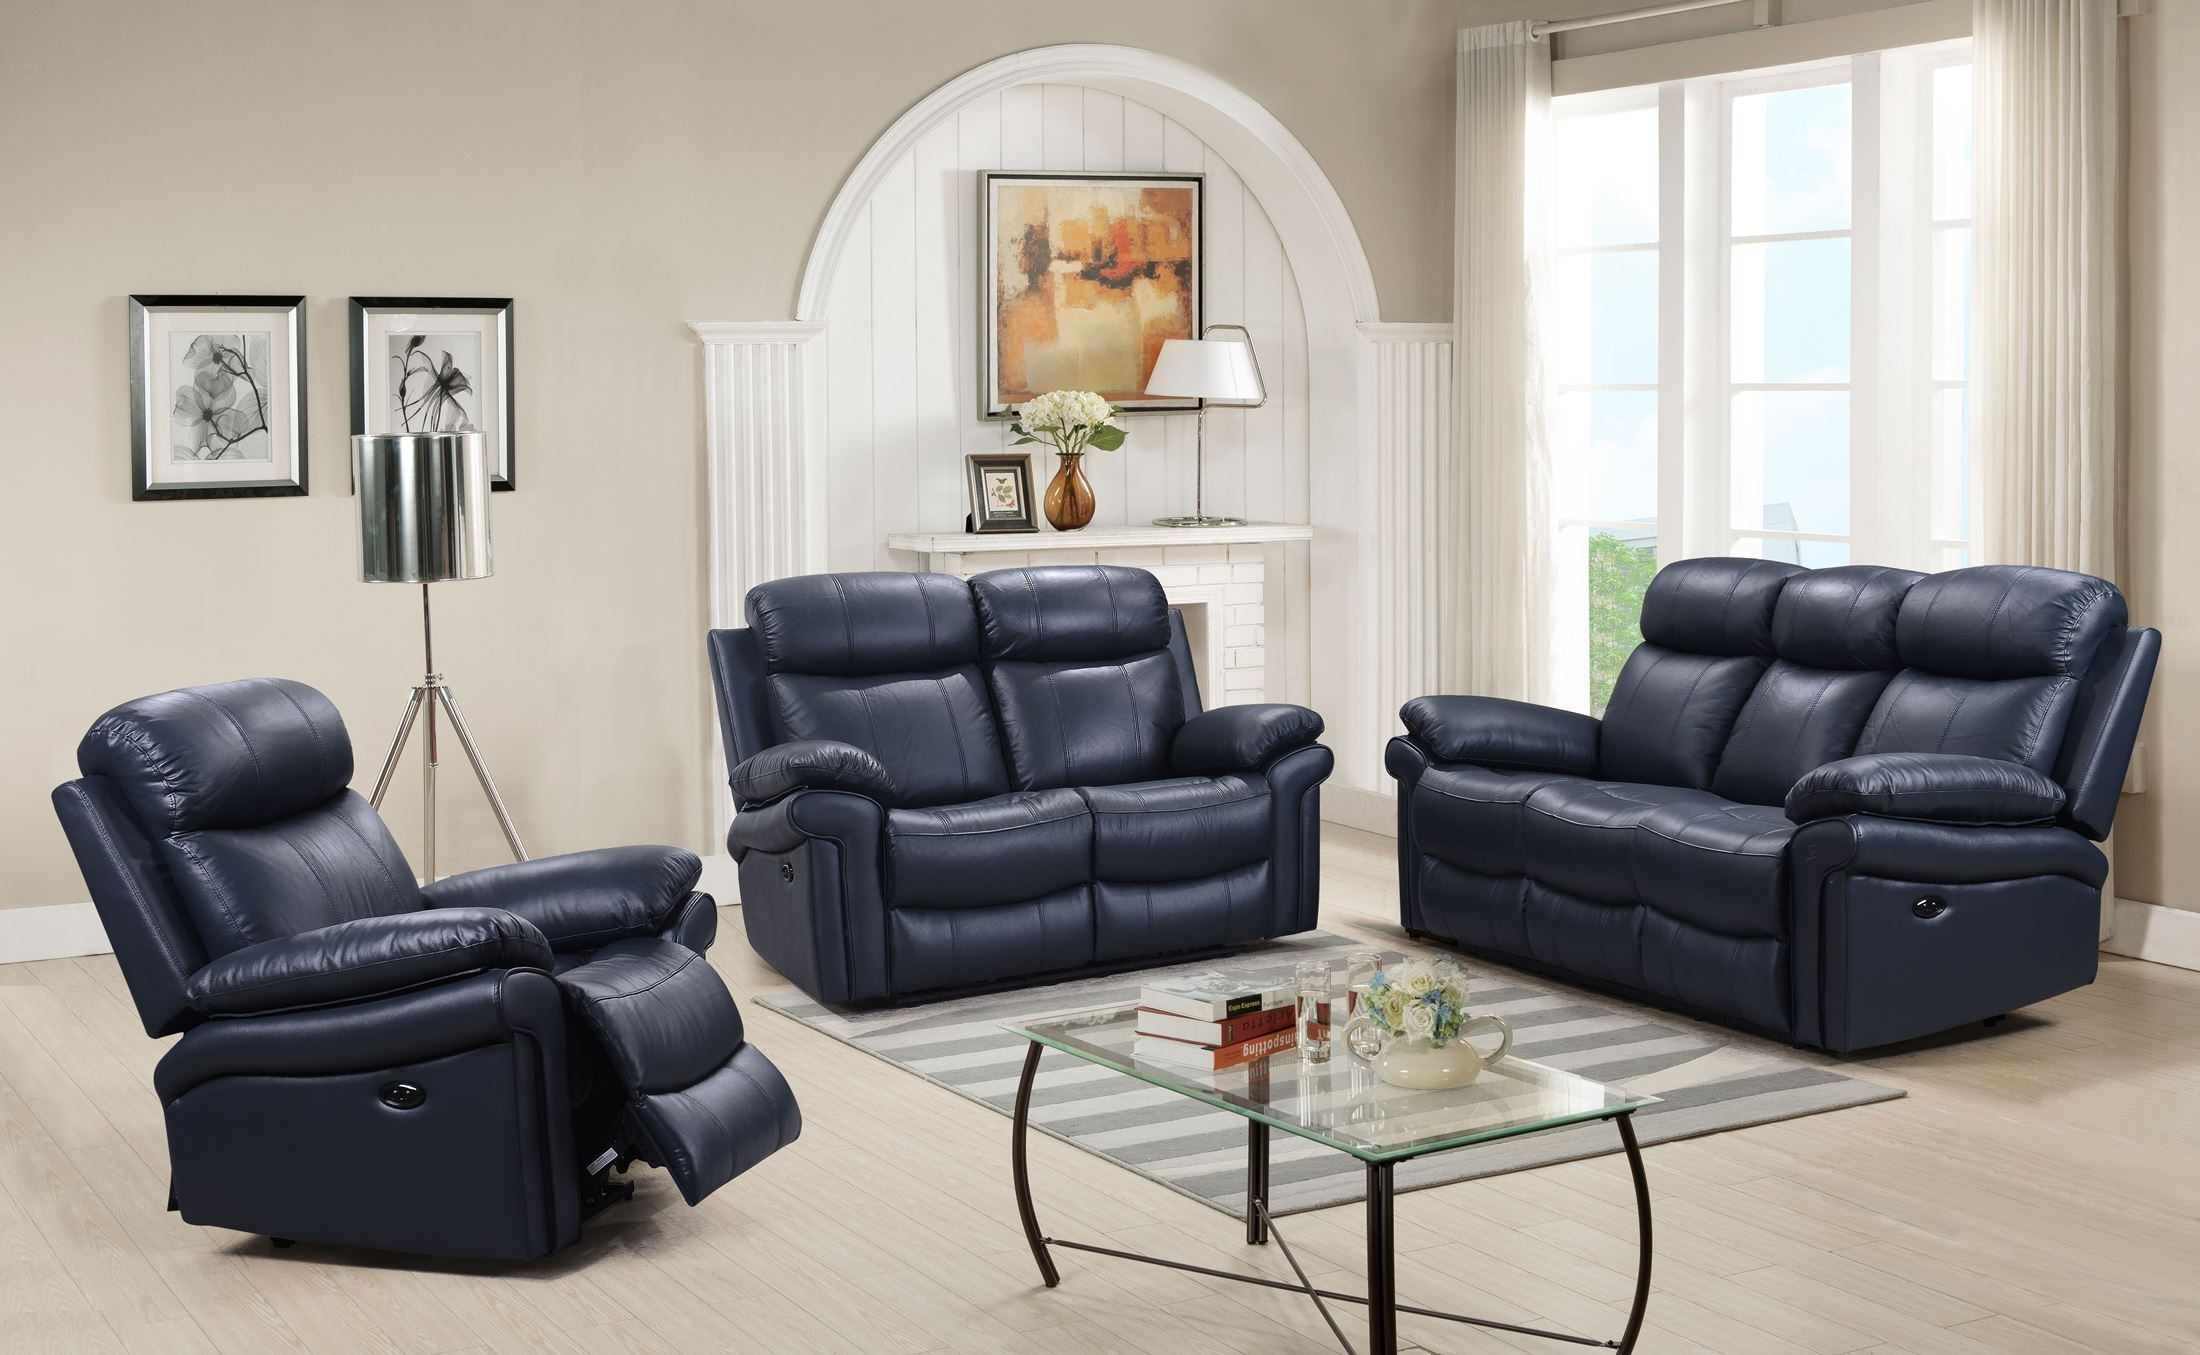 recliner living room set grey and tan shae joplin blue leather power reclining from